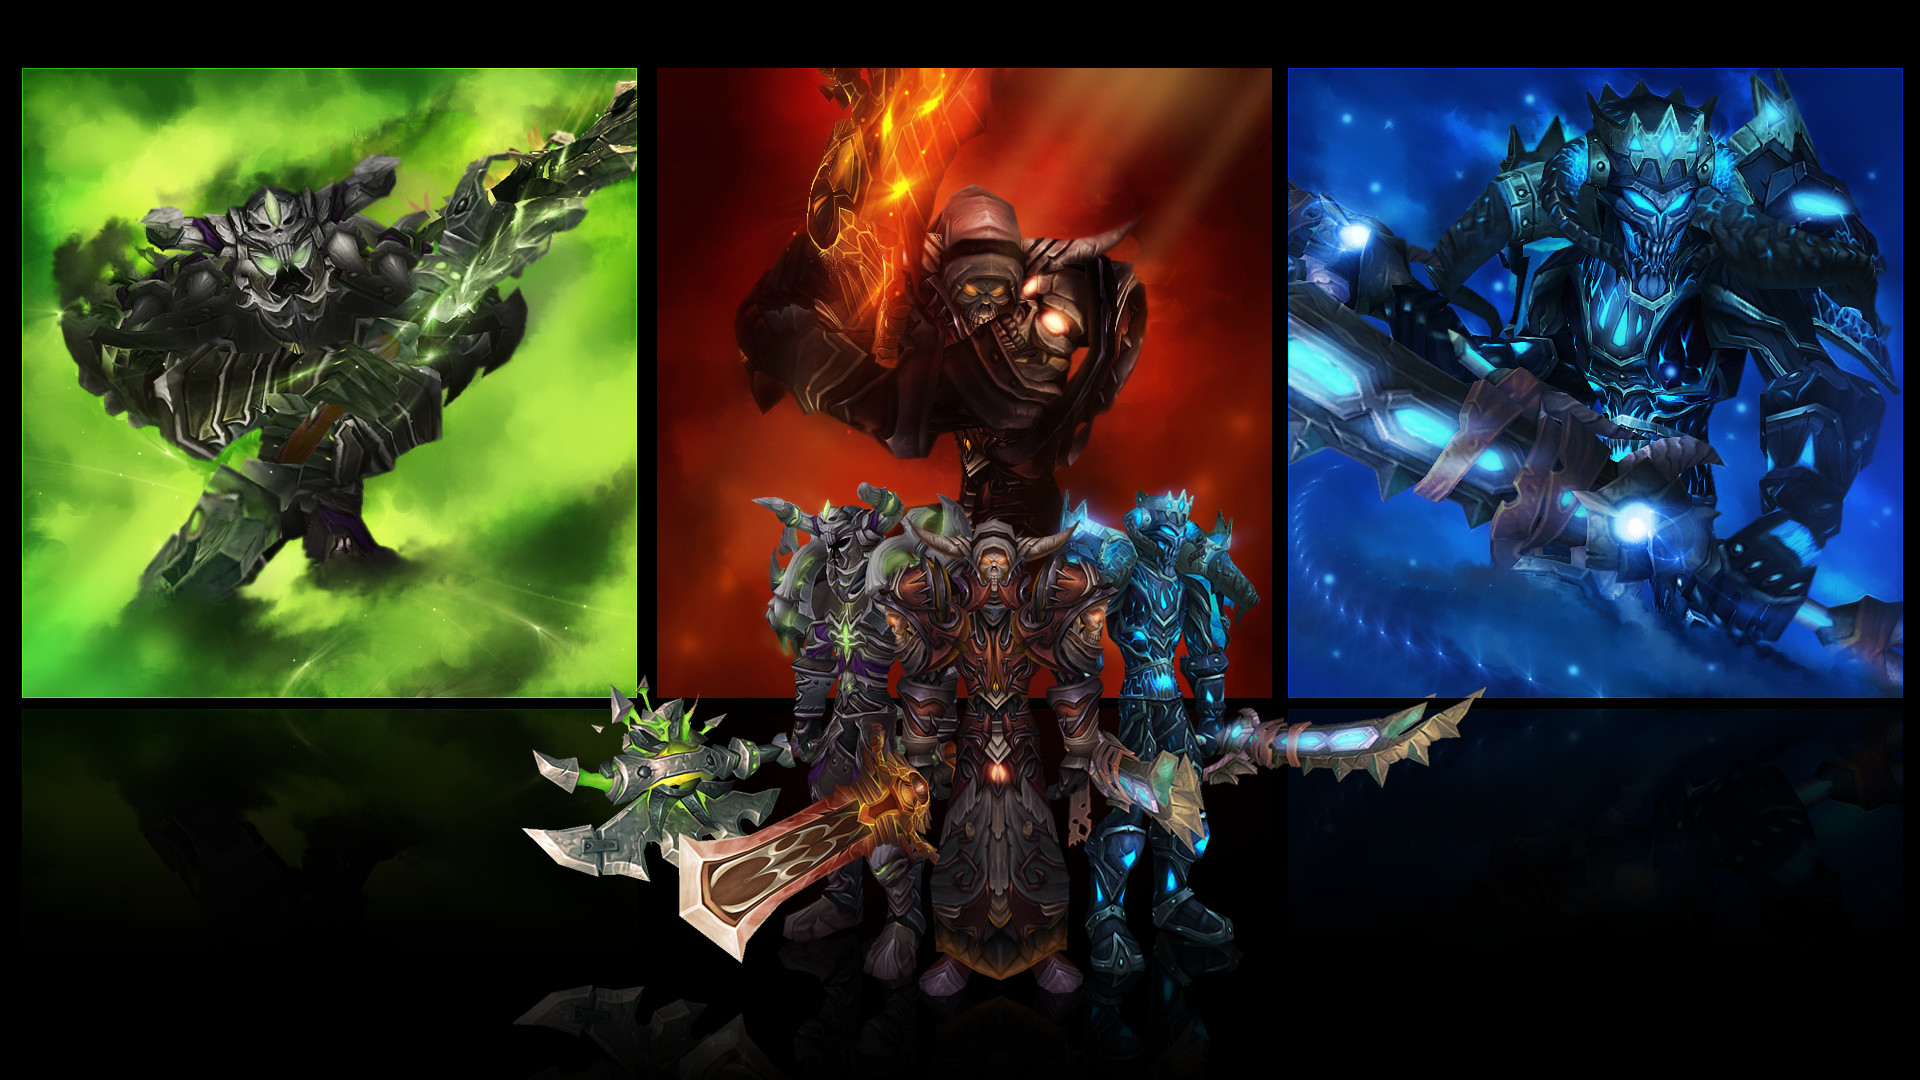 Death Knight Wallpaper by Thunderspeed Death Knight Wallpaper by  Thunderspeed